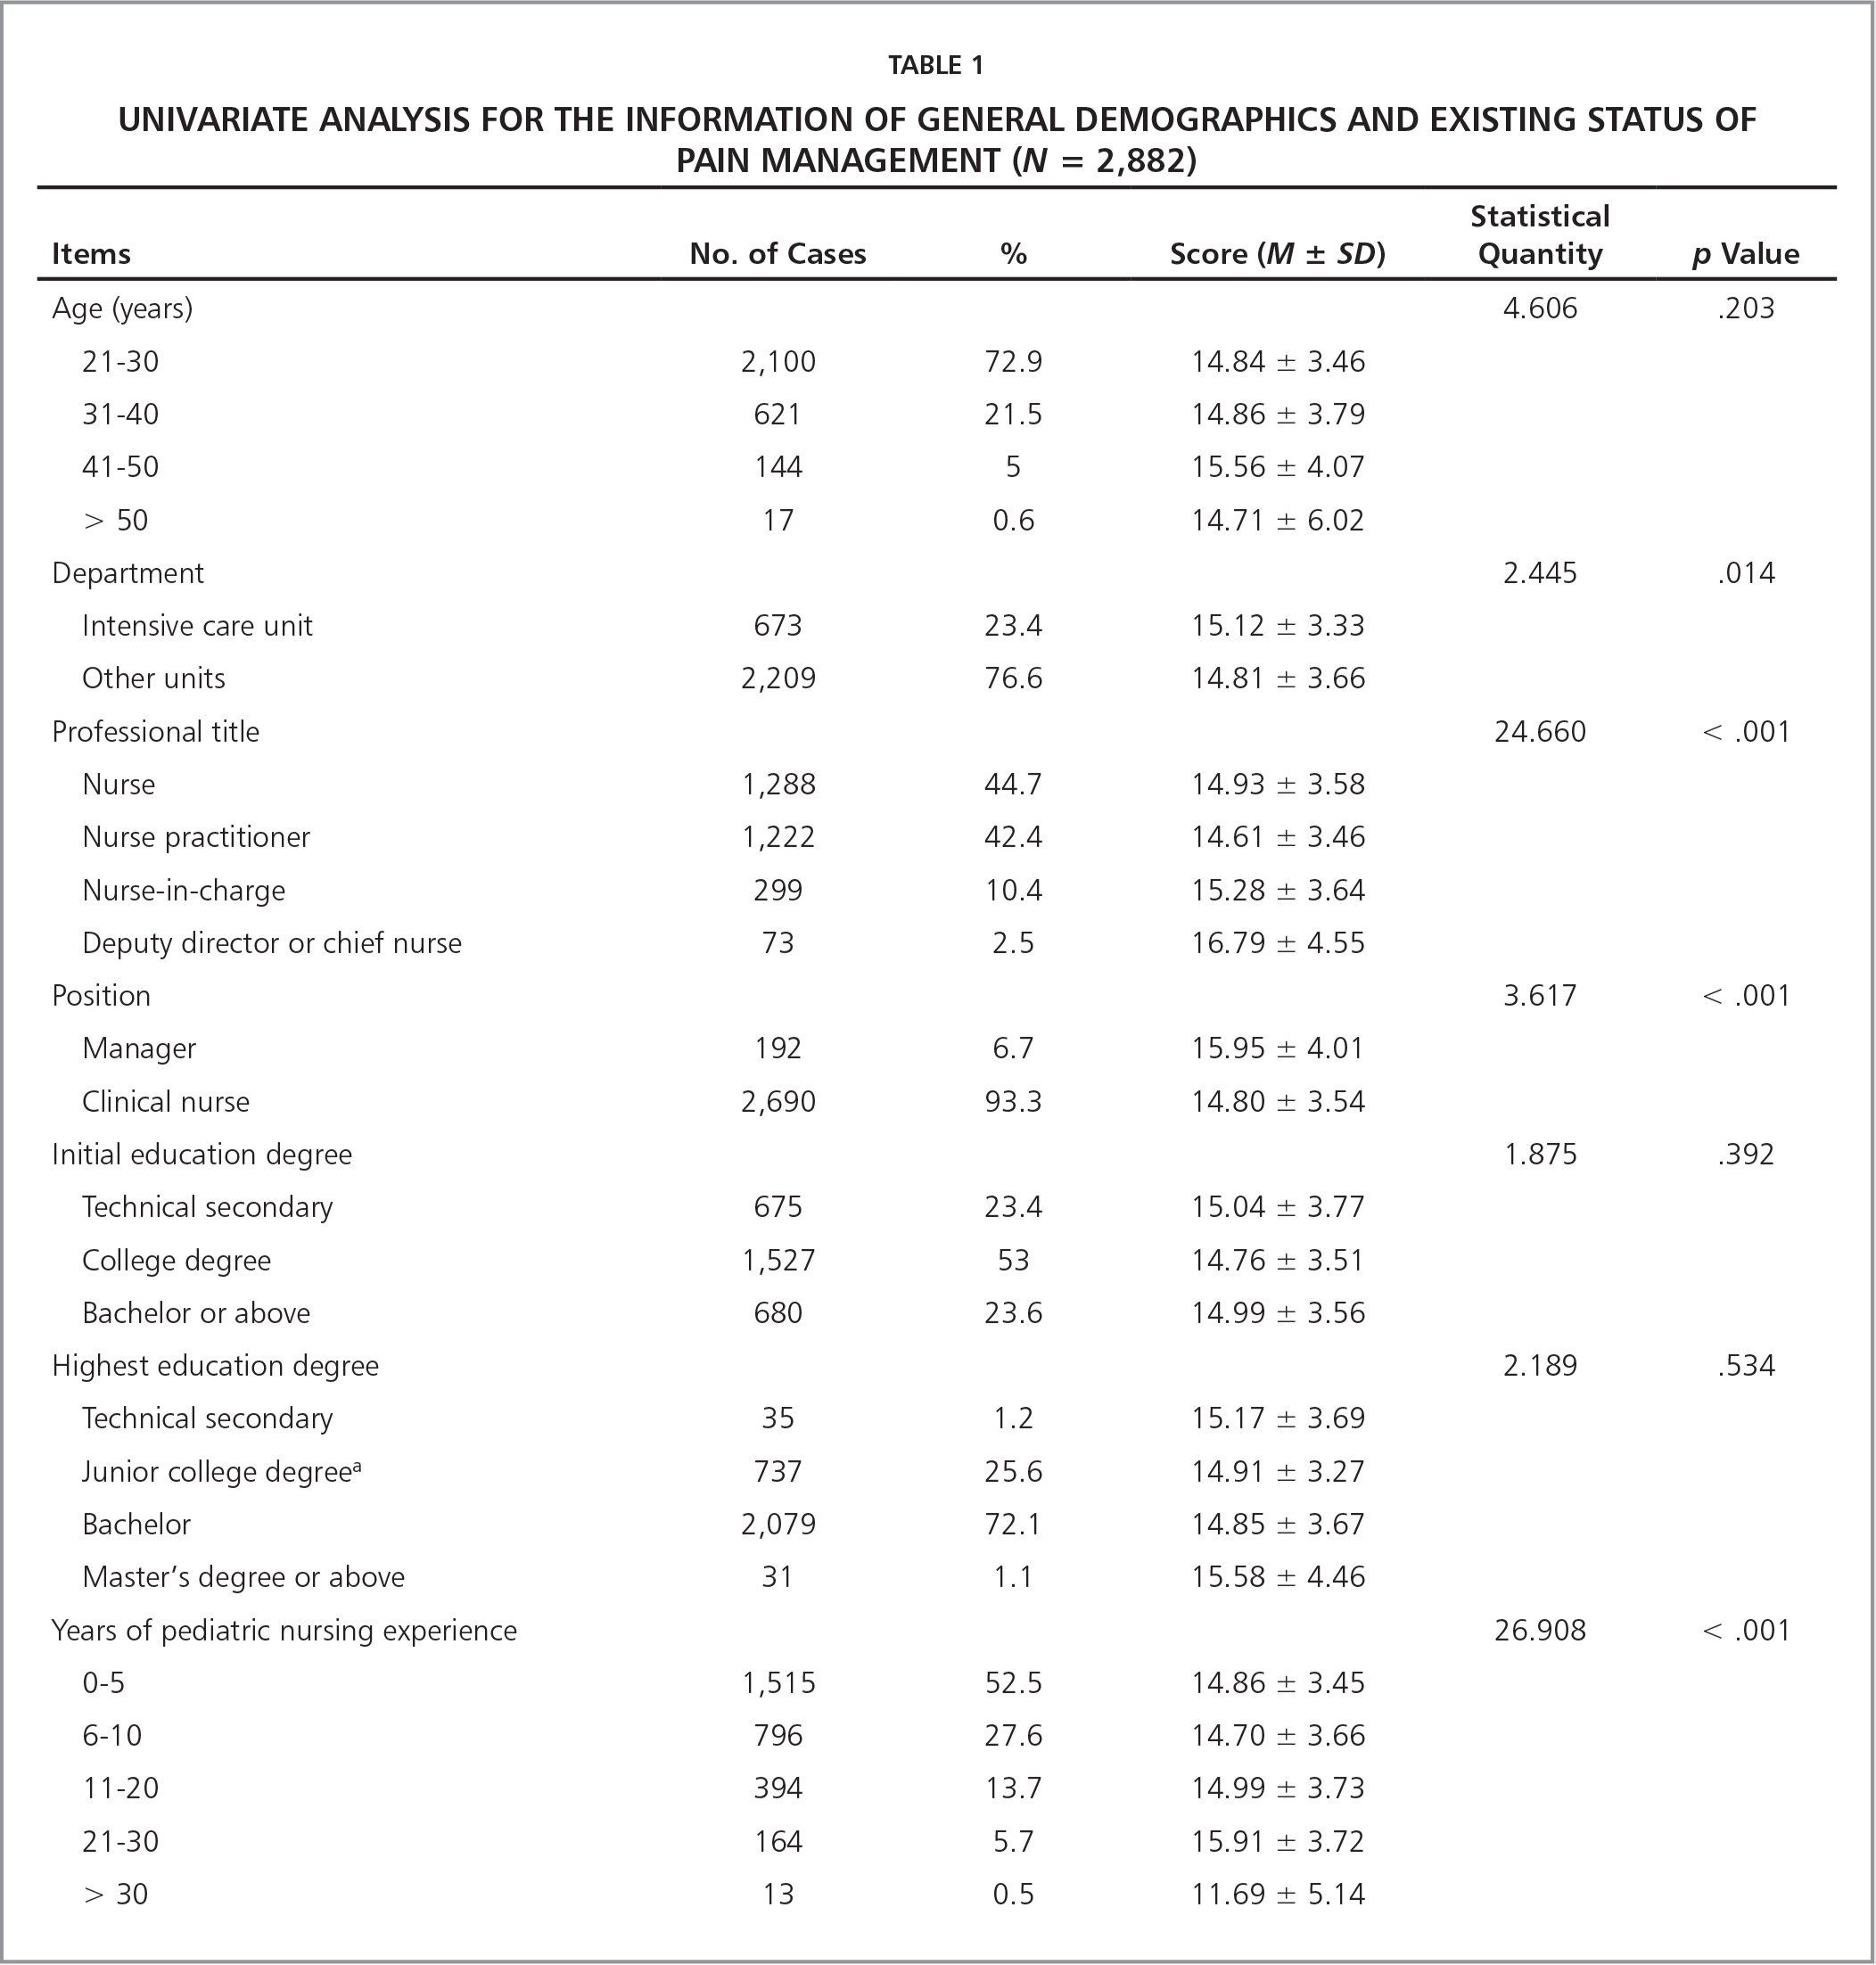 Univariate Analysis for the Information of General Demographics and Existing Status of Pain Management (N = 2,882)